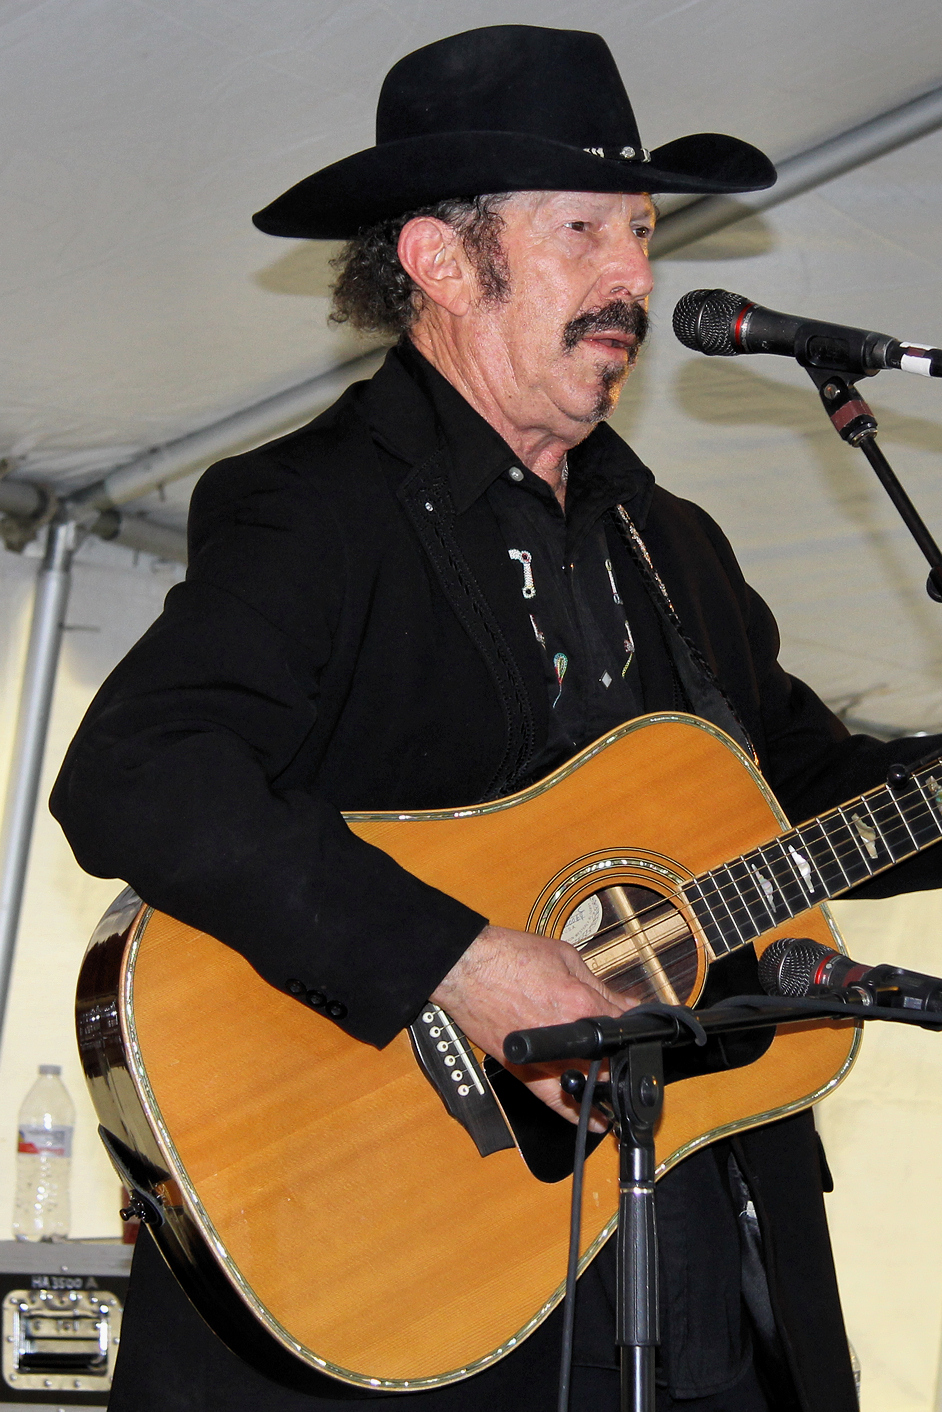 Kinky Friedman performing at the 2013 Texas Book Festival.